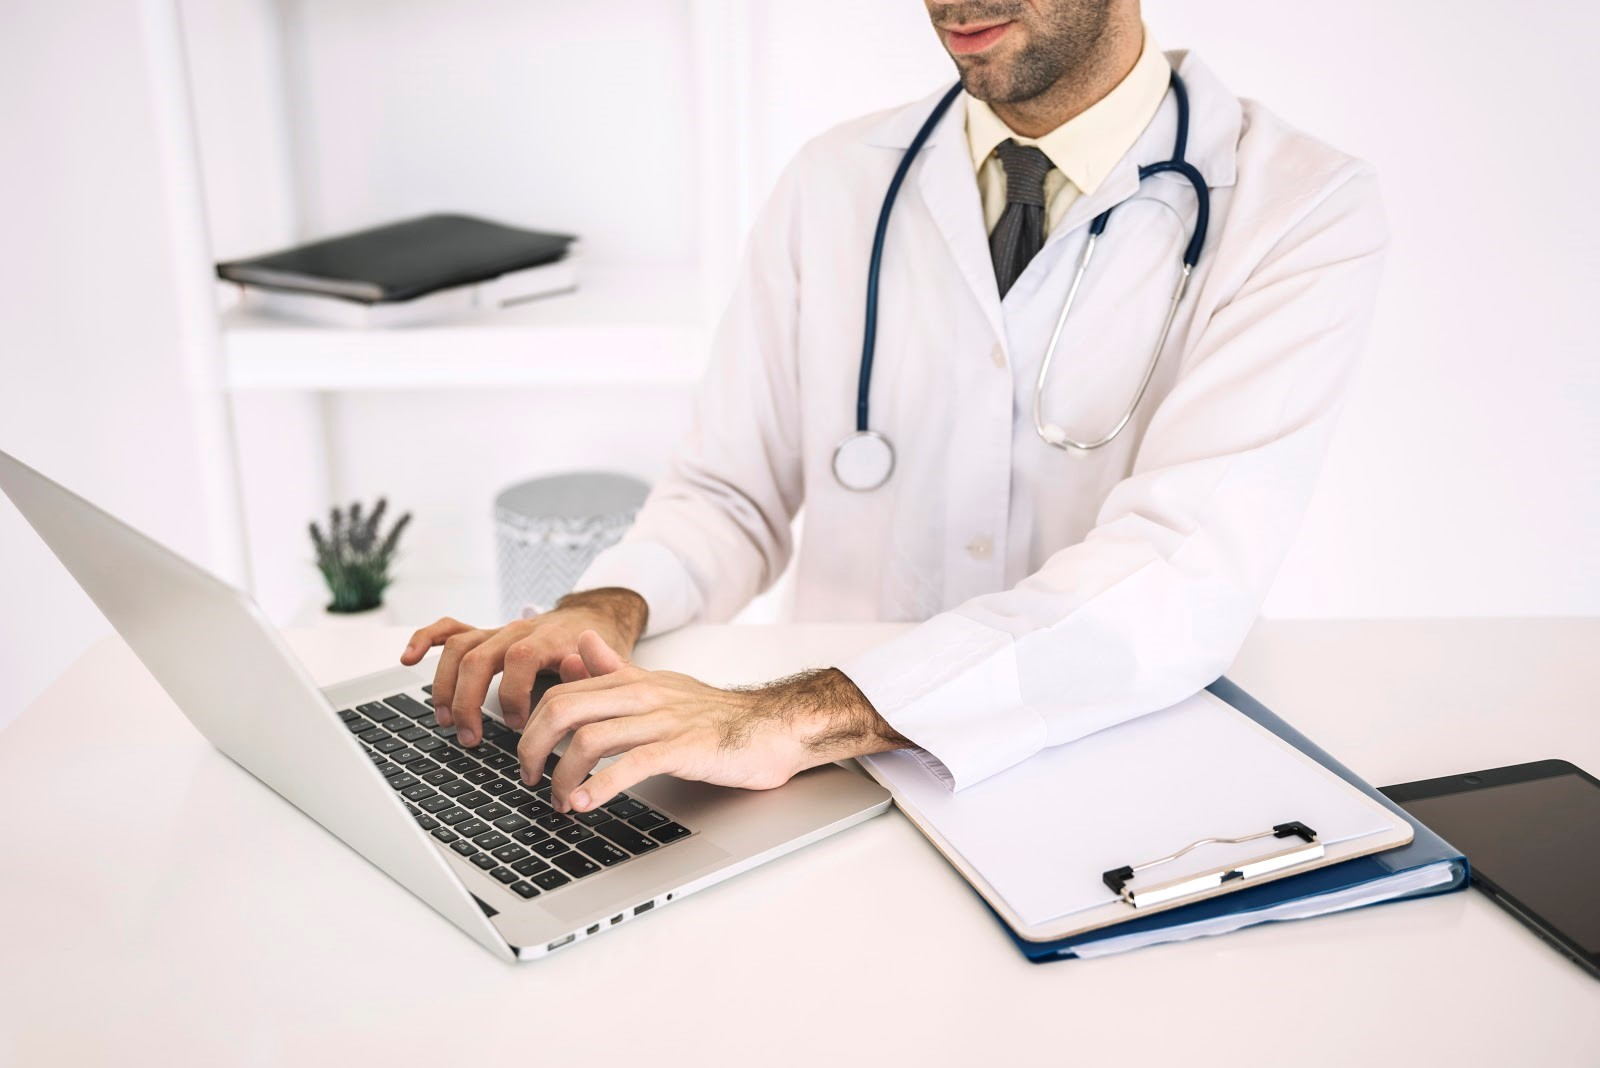 4 Ways to Keep Healthcare Data Protected in Market Research Transcriptions